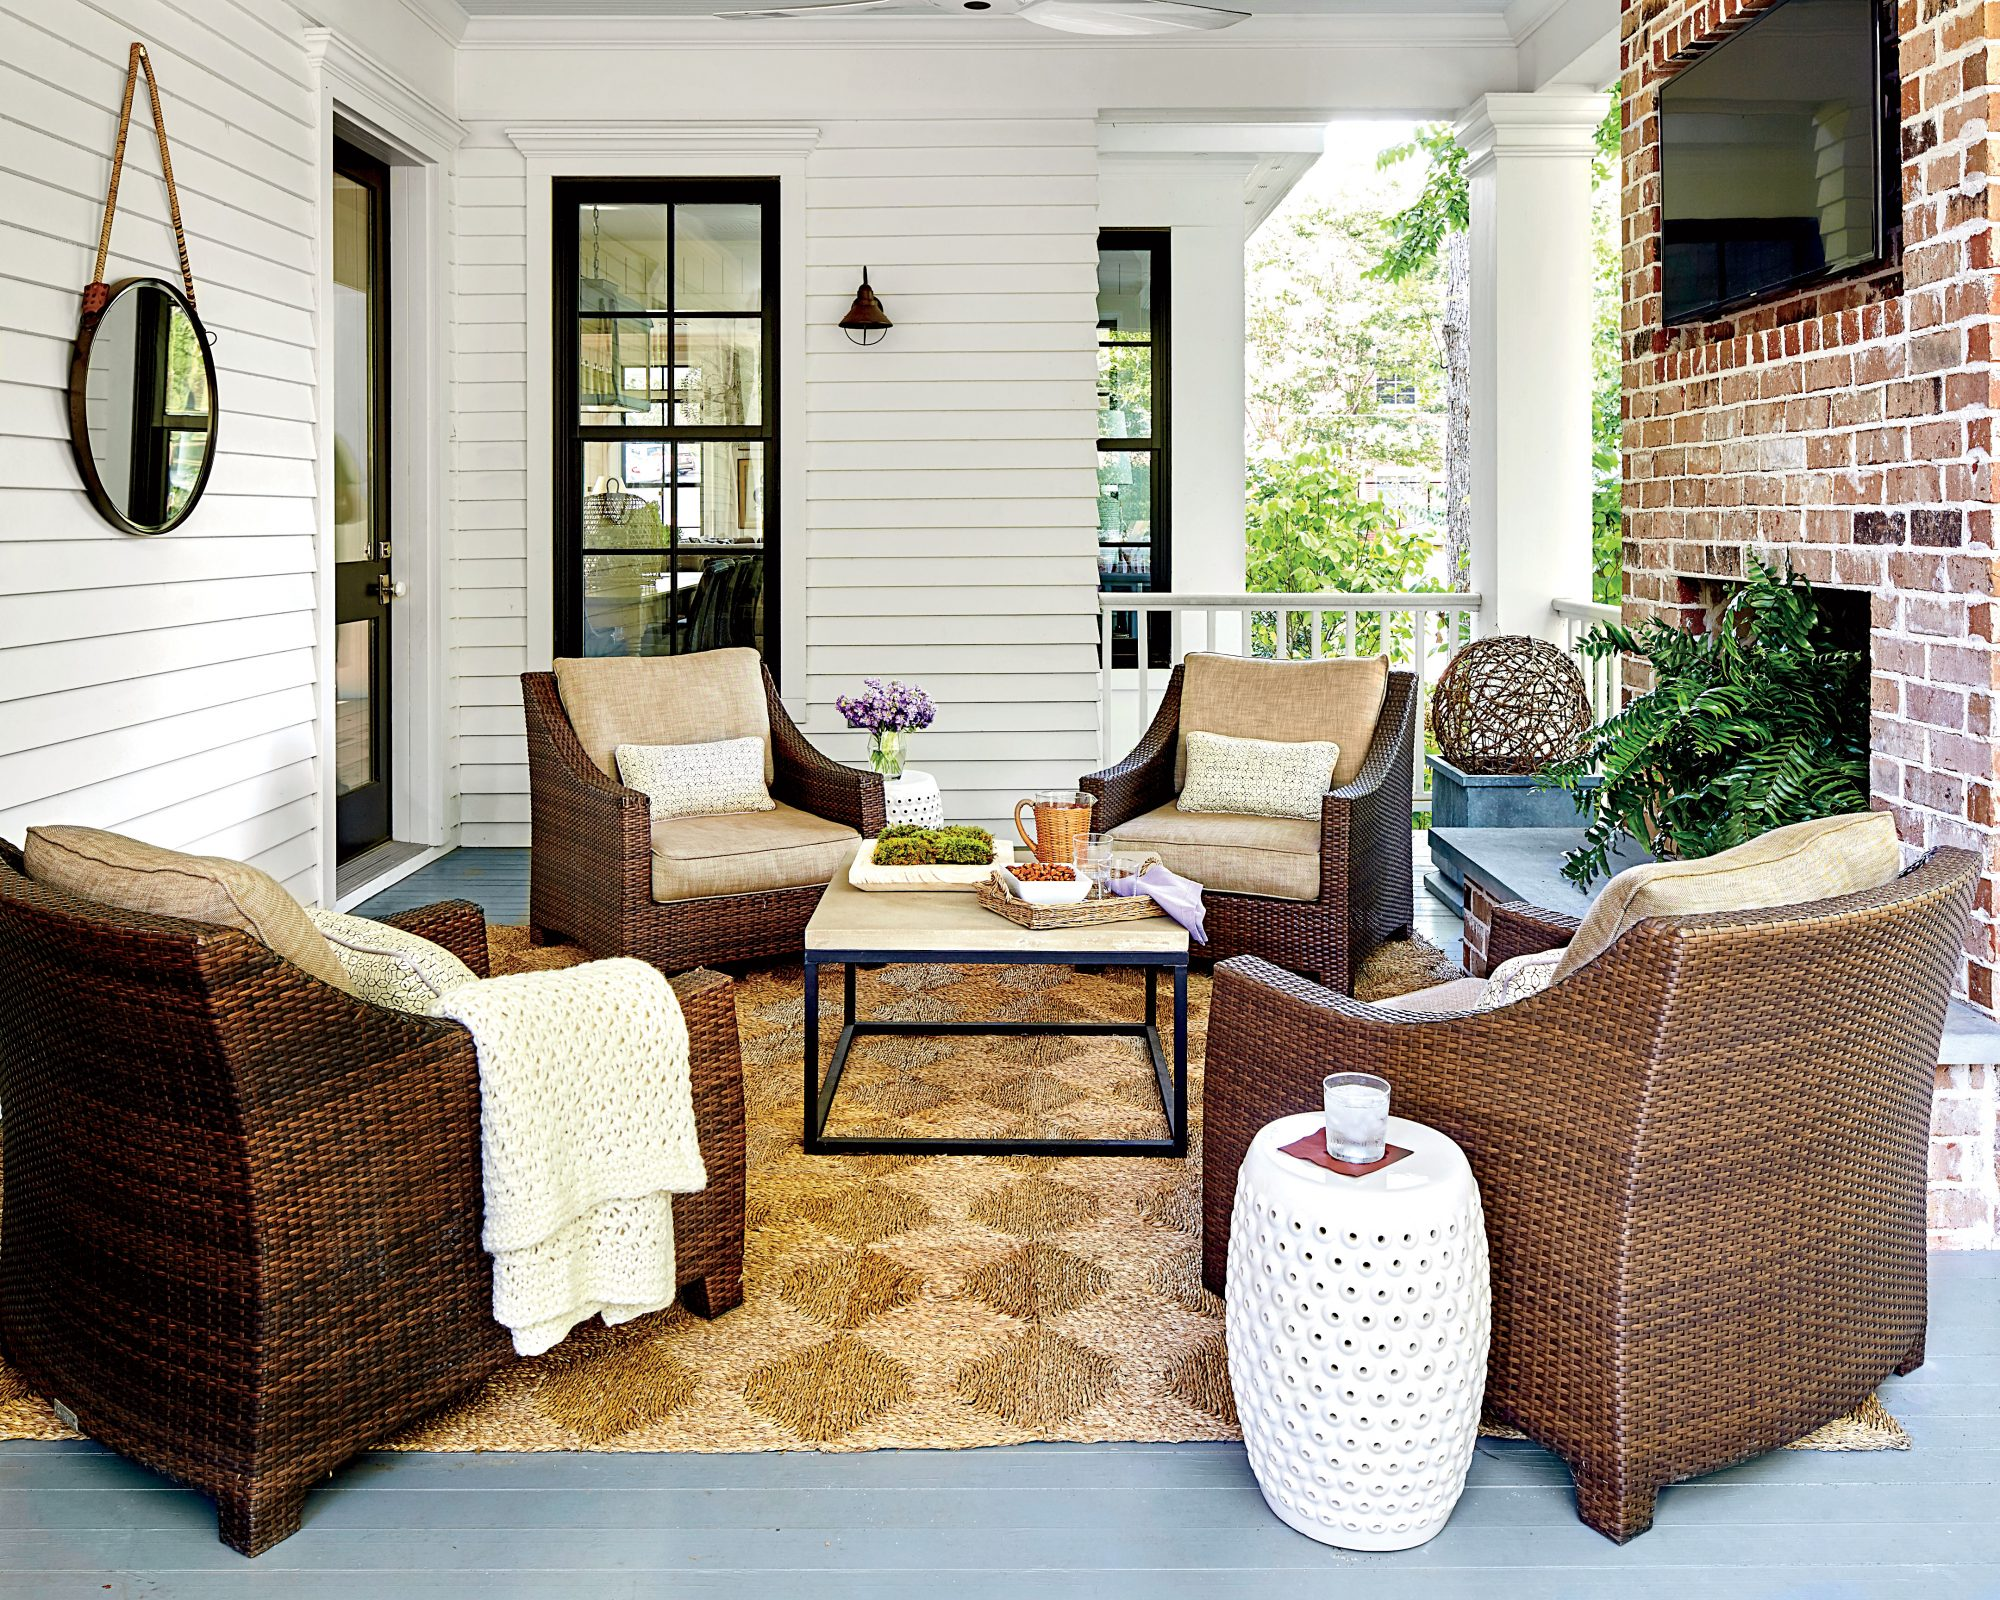 Create an Outdoor Hangout